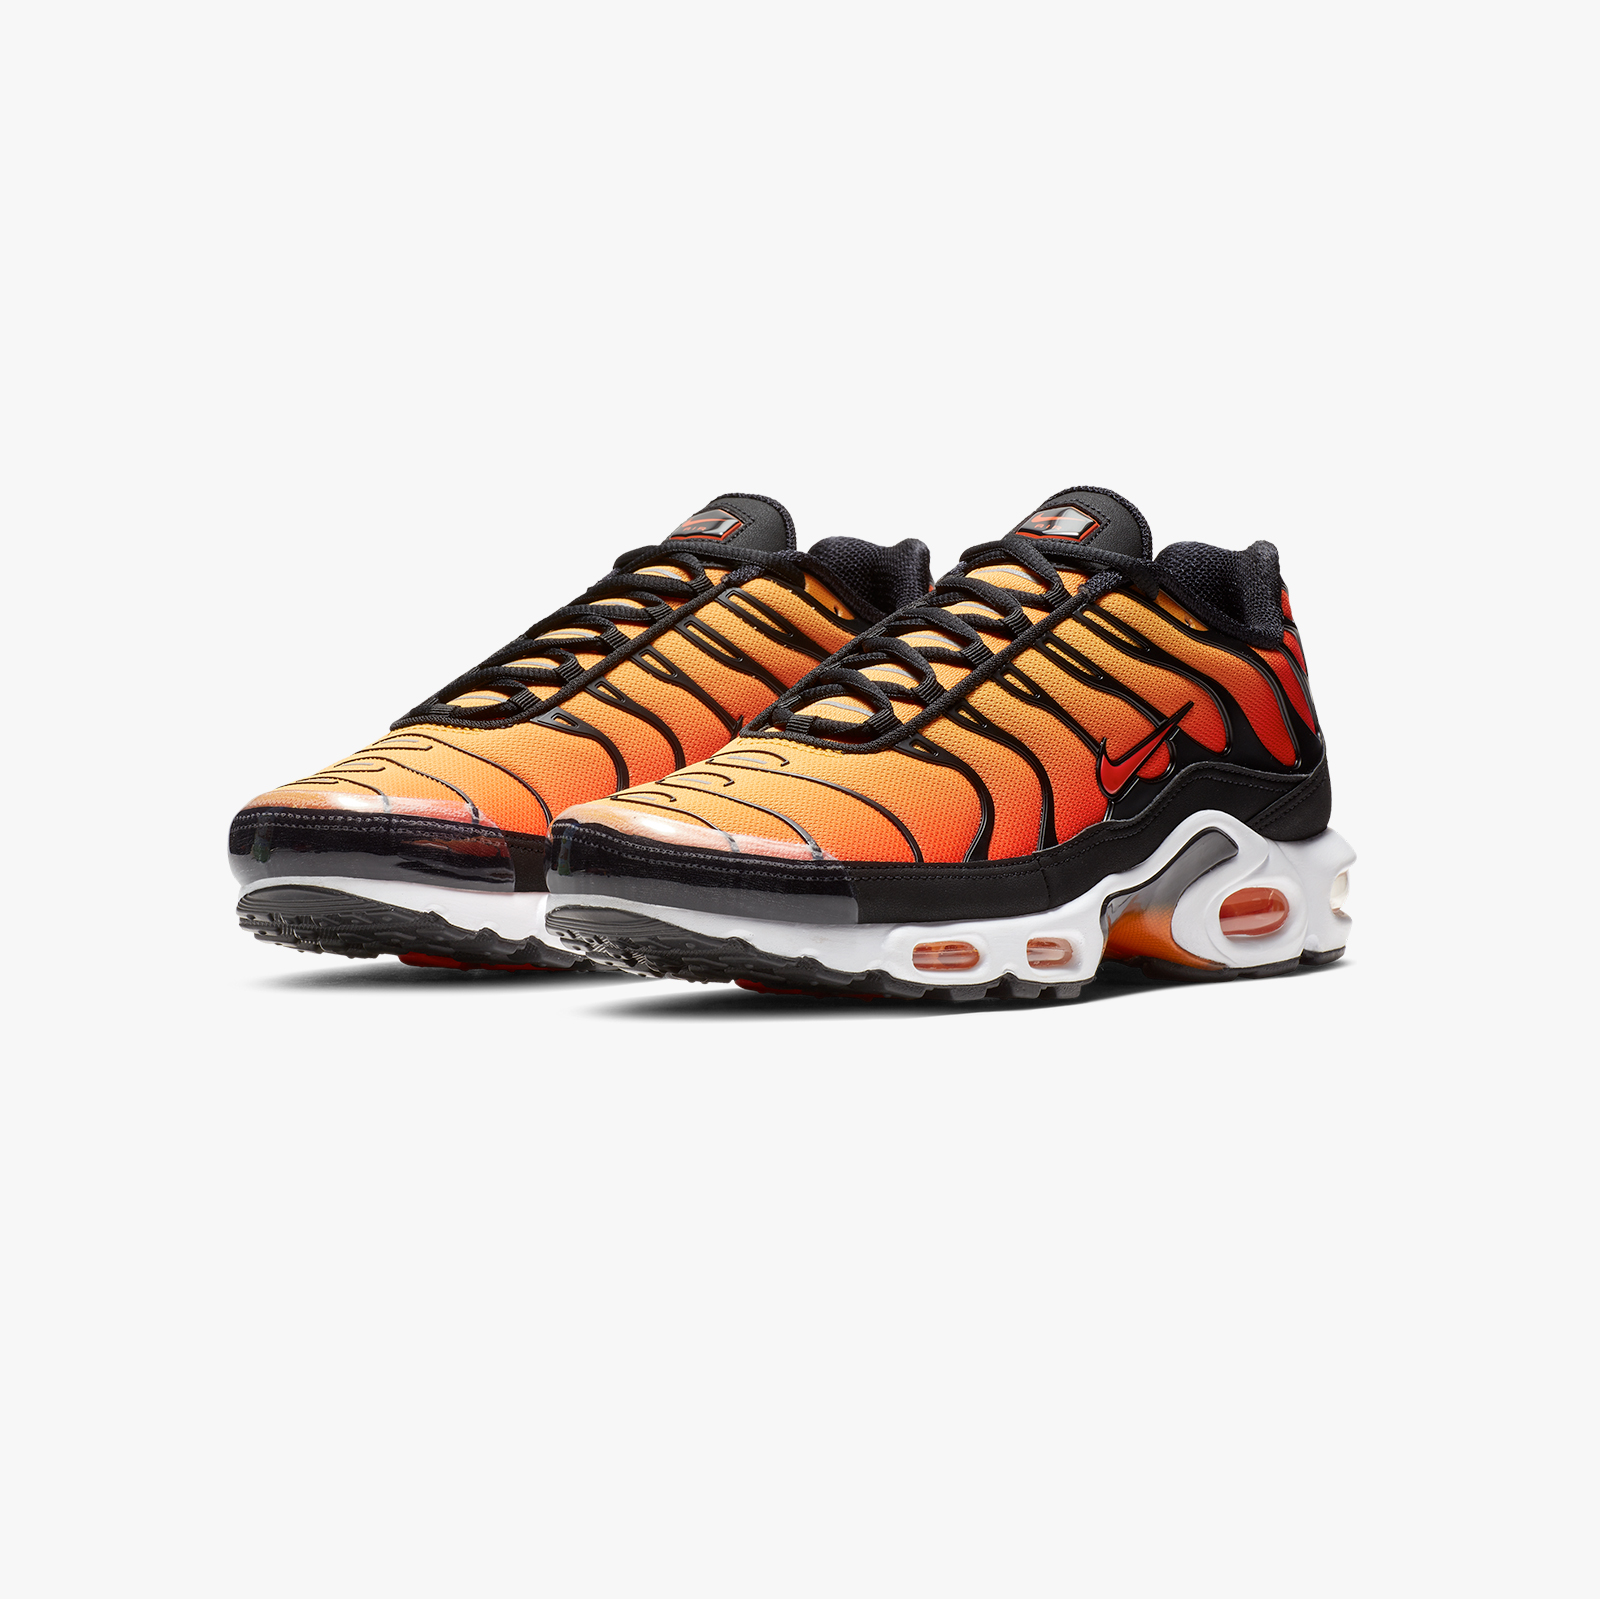 competitive price 76392 2bfd5 Very Goods | Nike Air Max Plus OG - Bq4629-001 ...